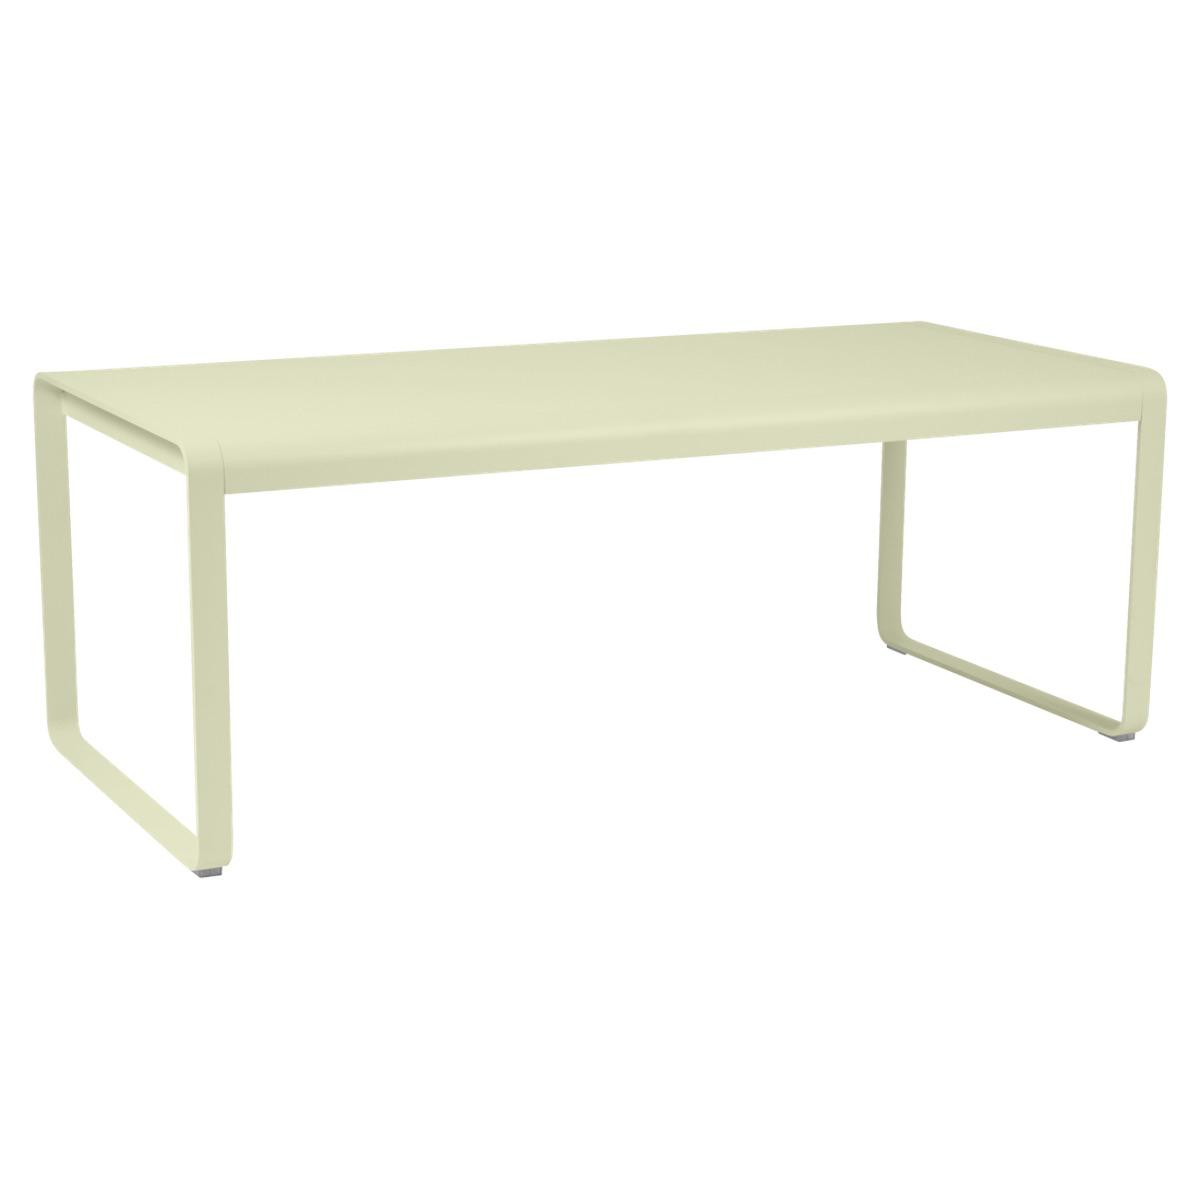 Table 90x196cm BELLEVIE PREMIUM Fermob vert tilleul